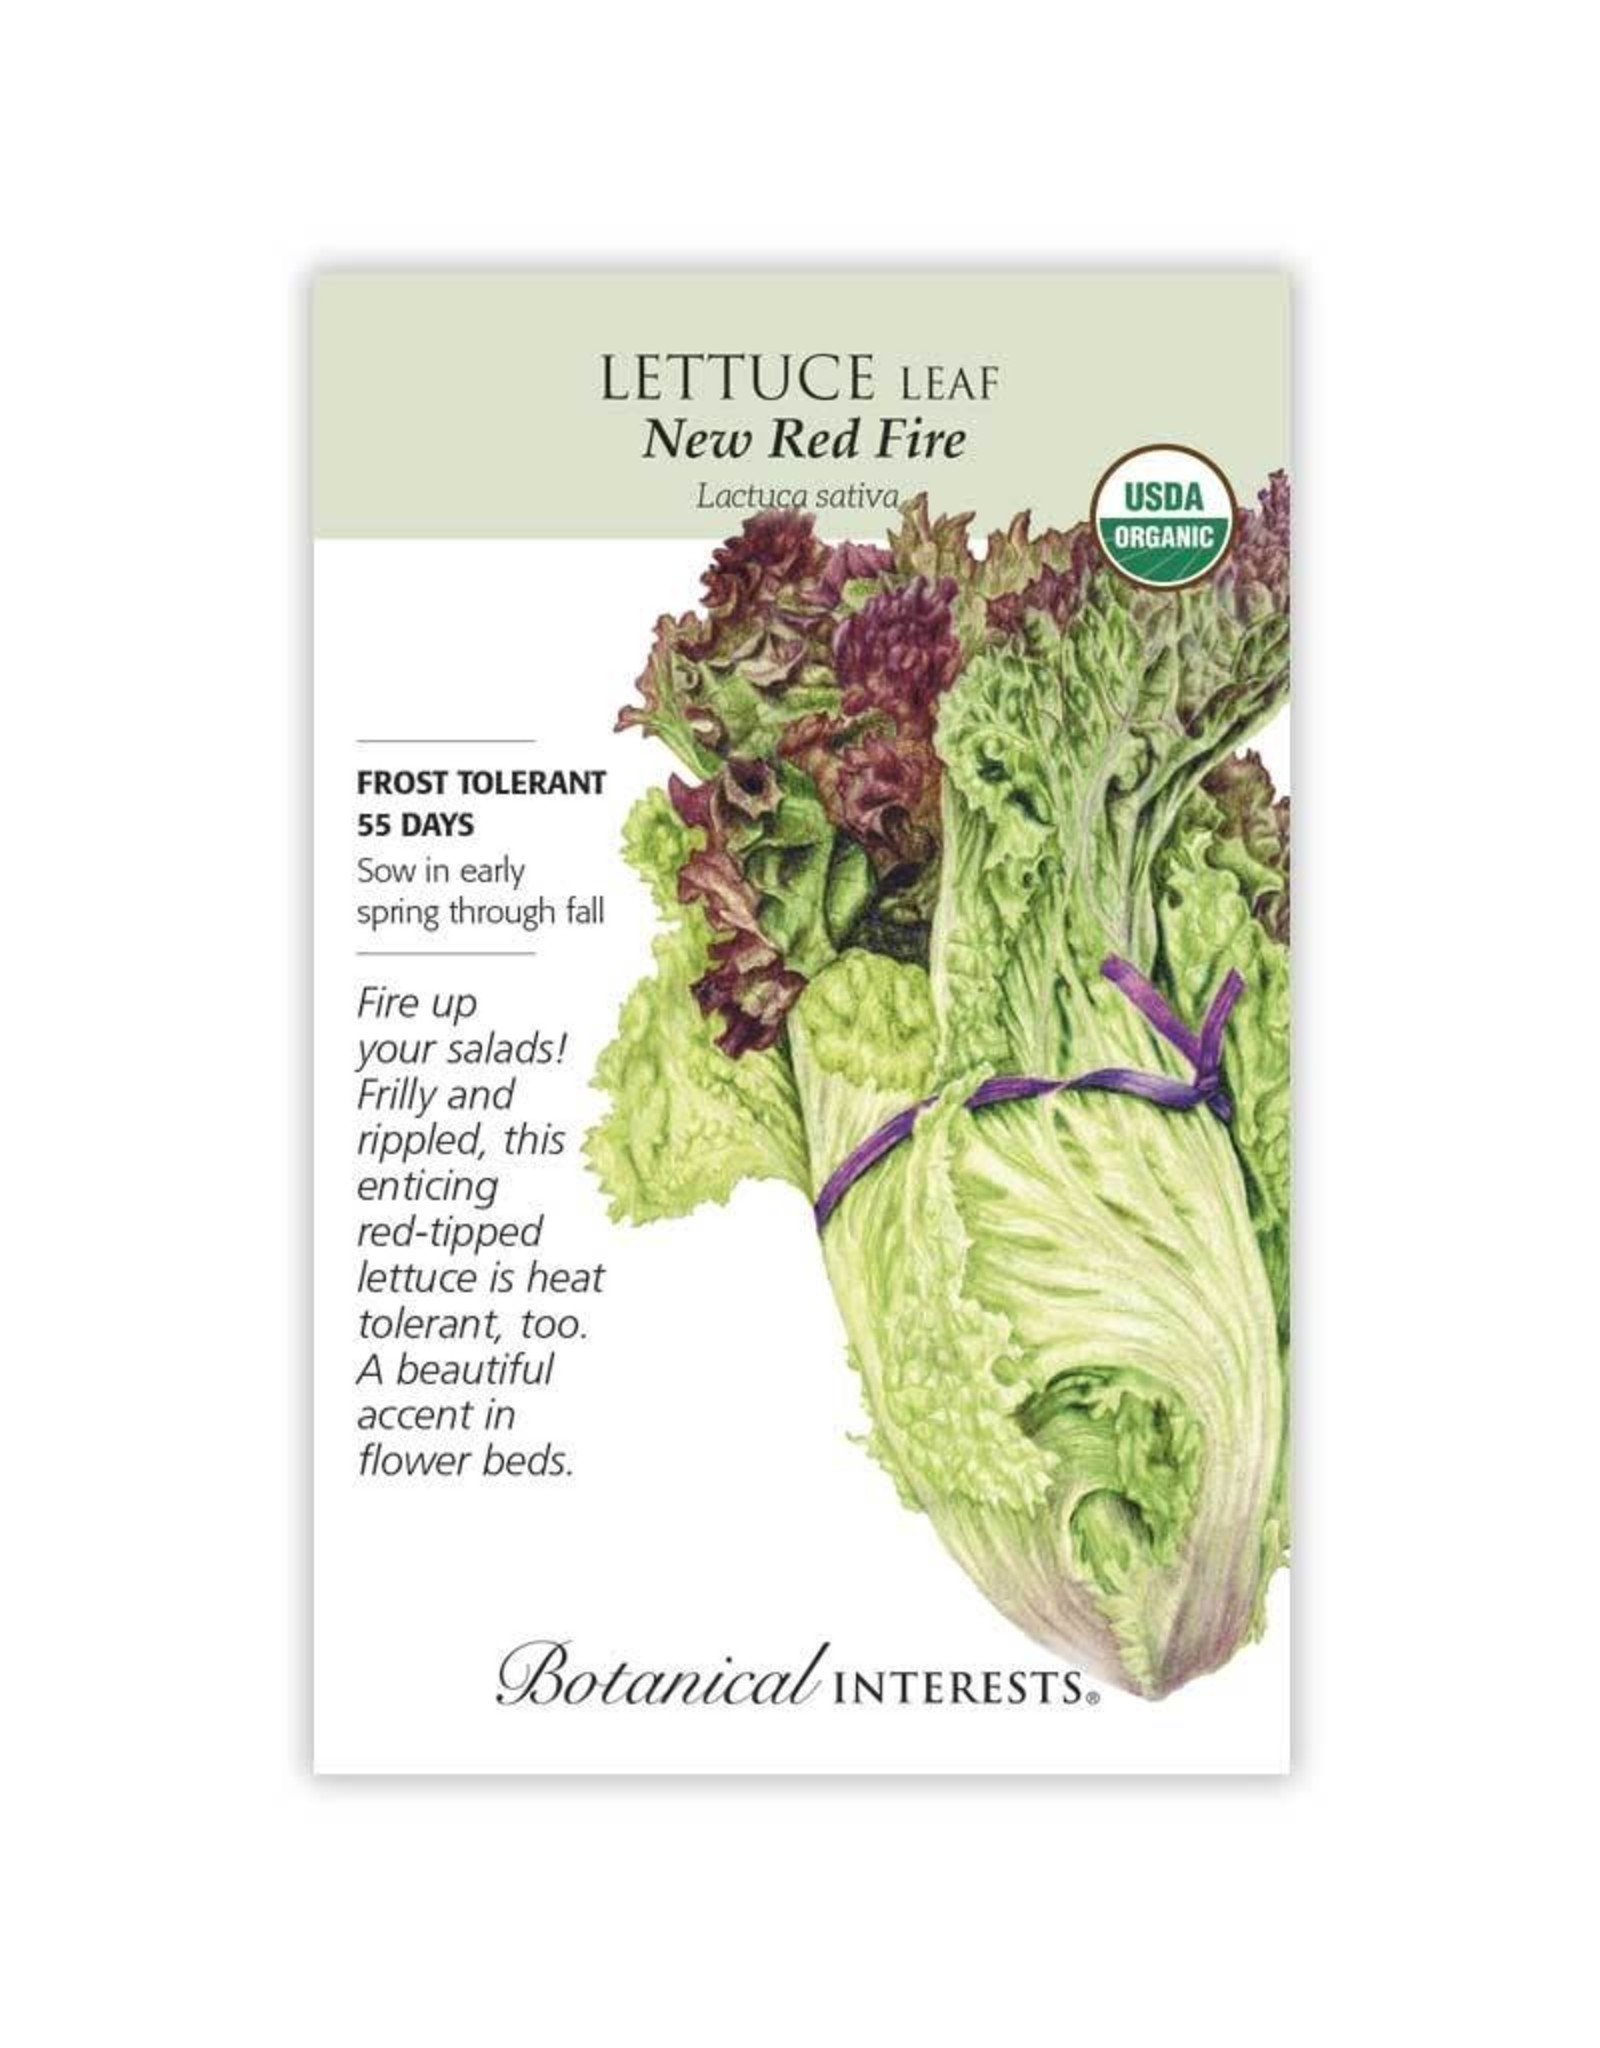 Seeds - Lettuce Leaf New Red Fire Organic